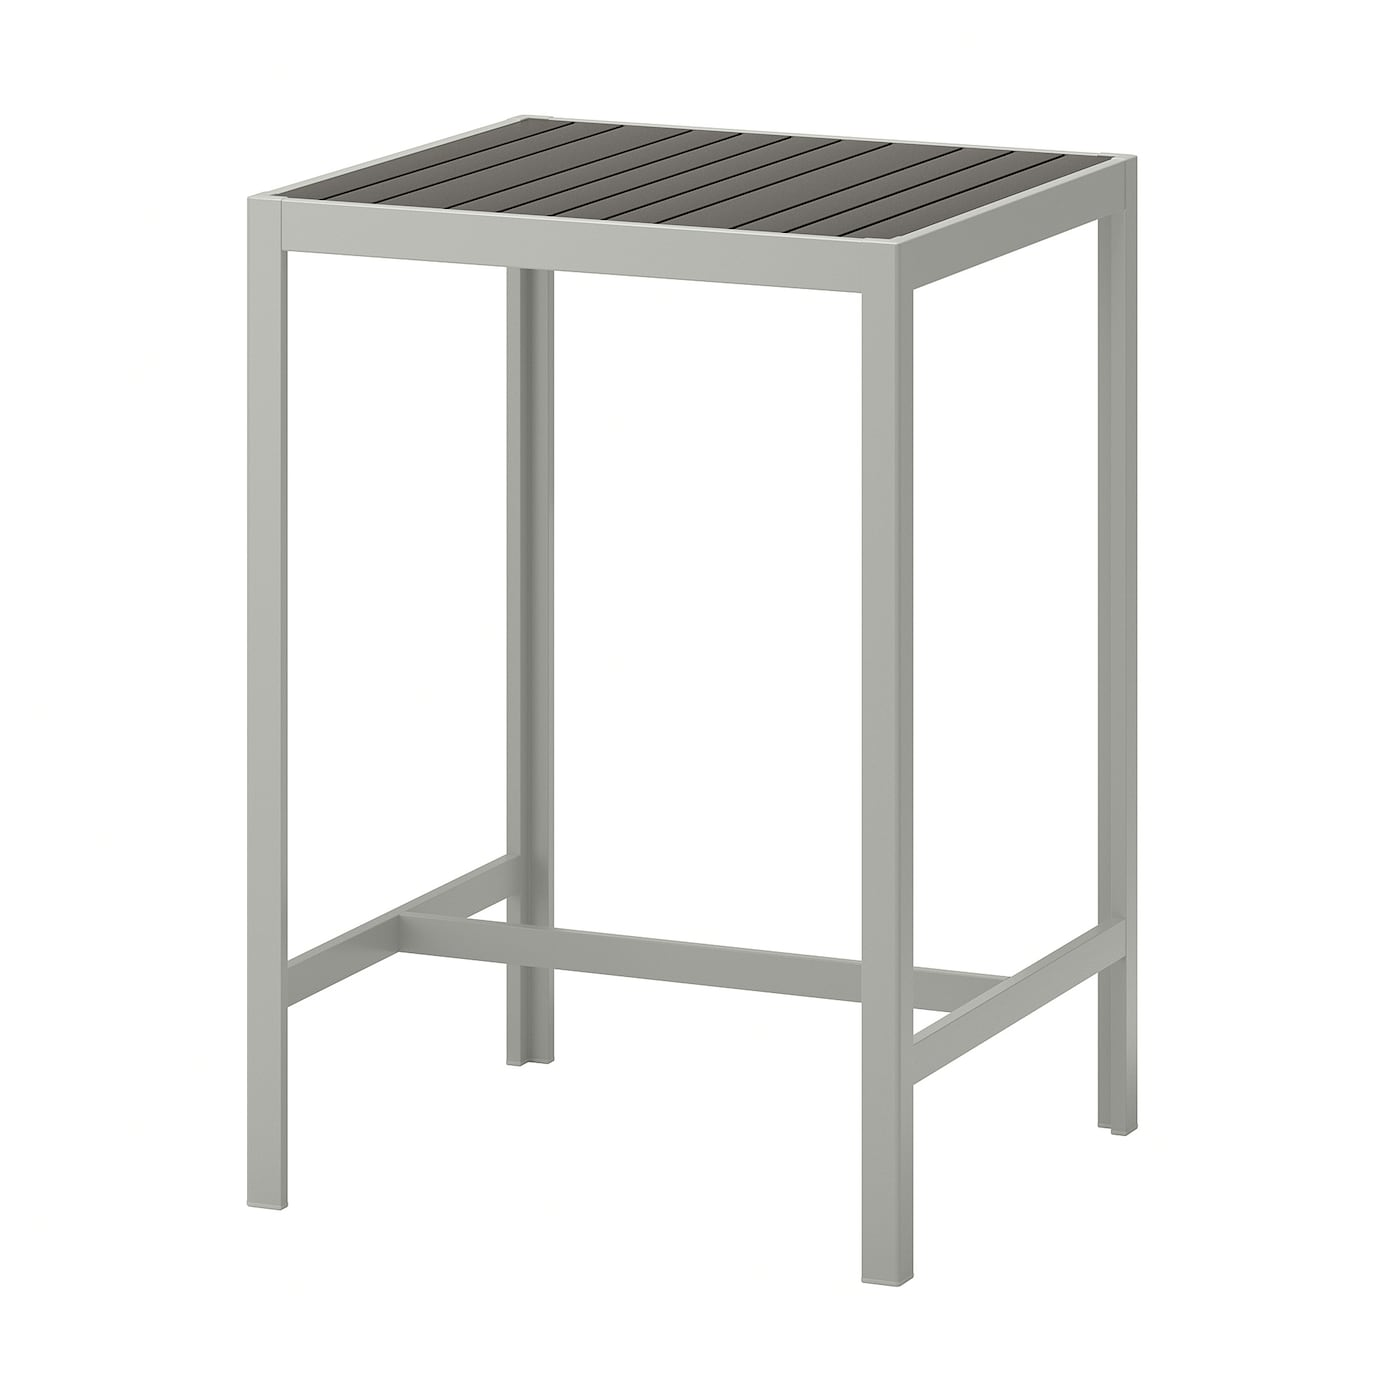 Ikea SjÄlland Bar Table Outdoor Easy To Keep Clean Just Wipe With A Damp